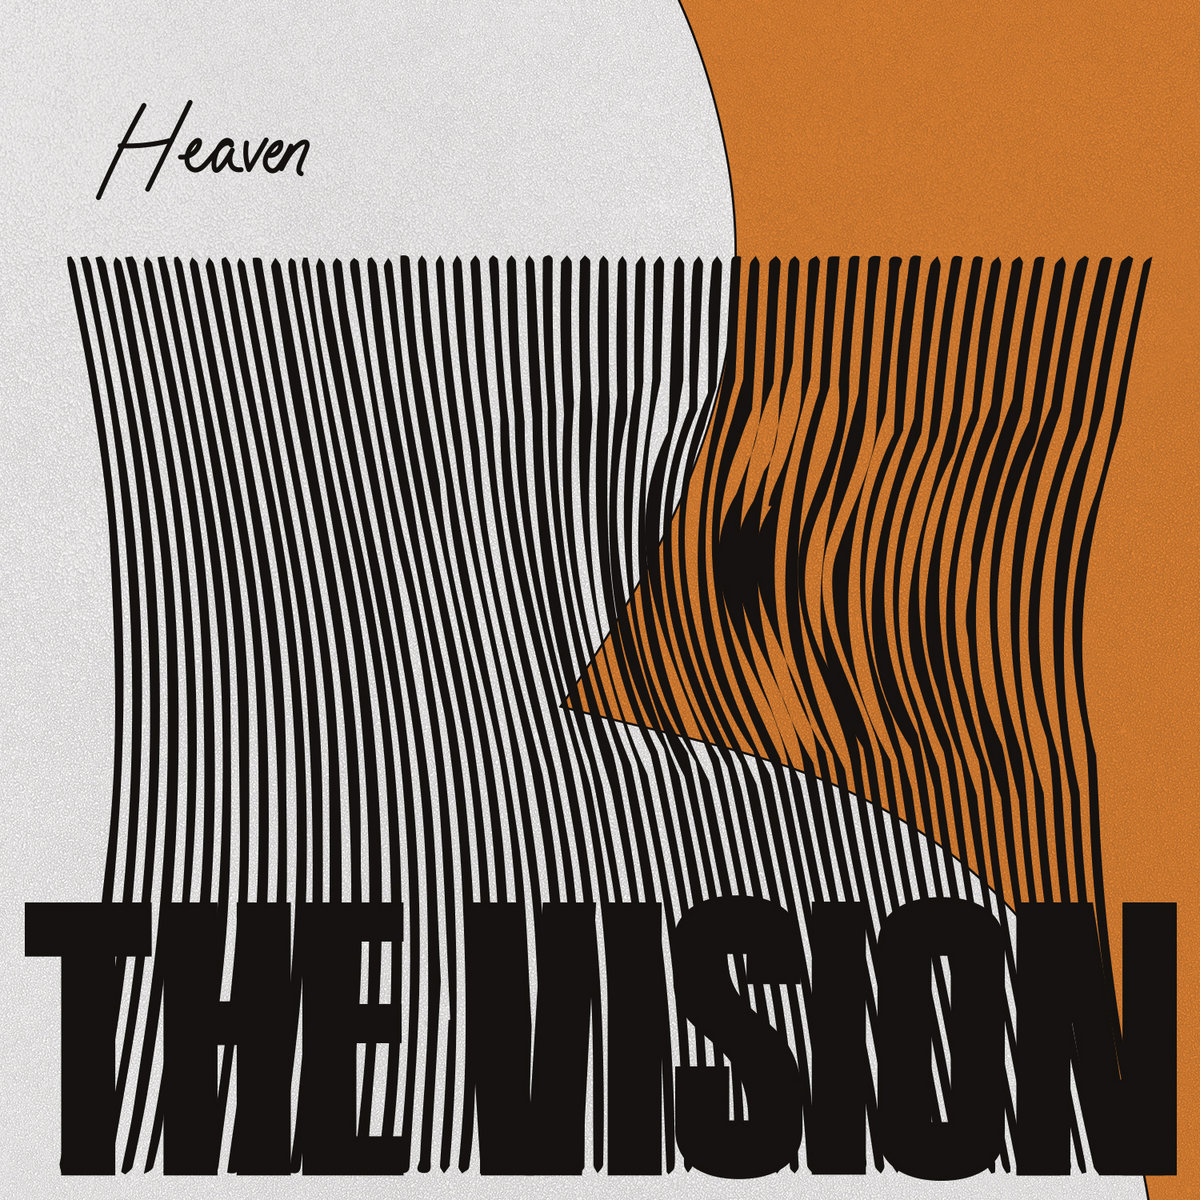 Heaven (Nightmares On Wax Extended Remix) | The Vision